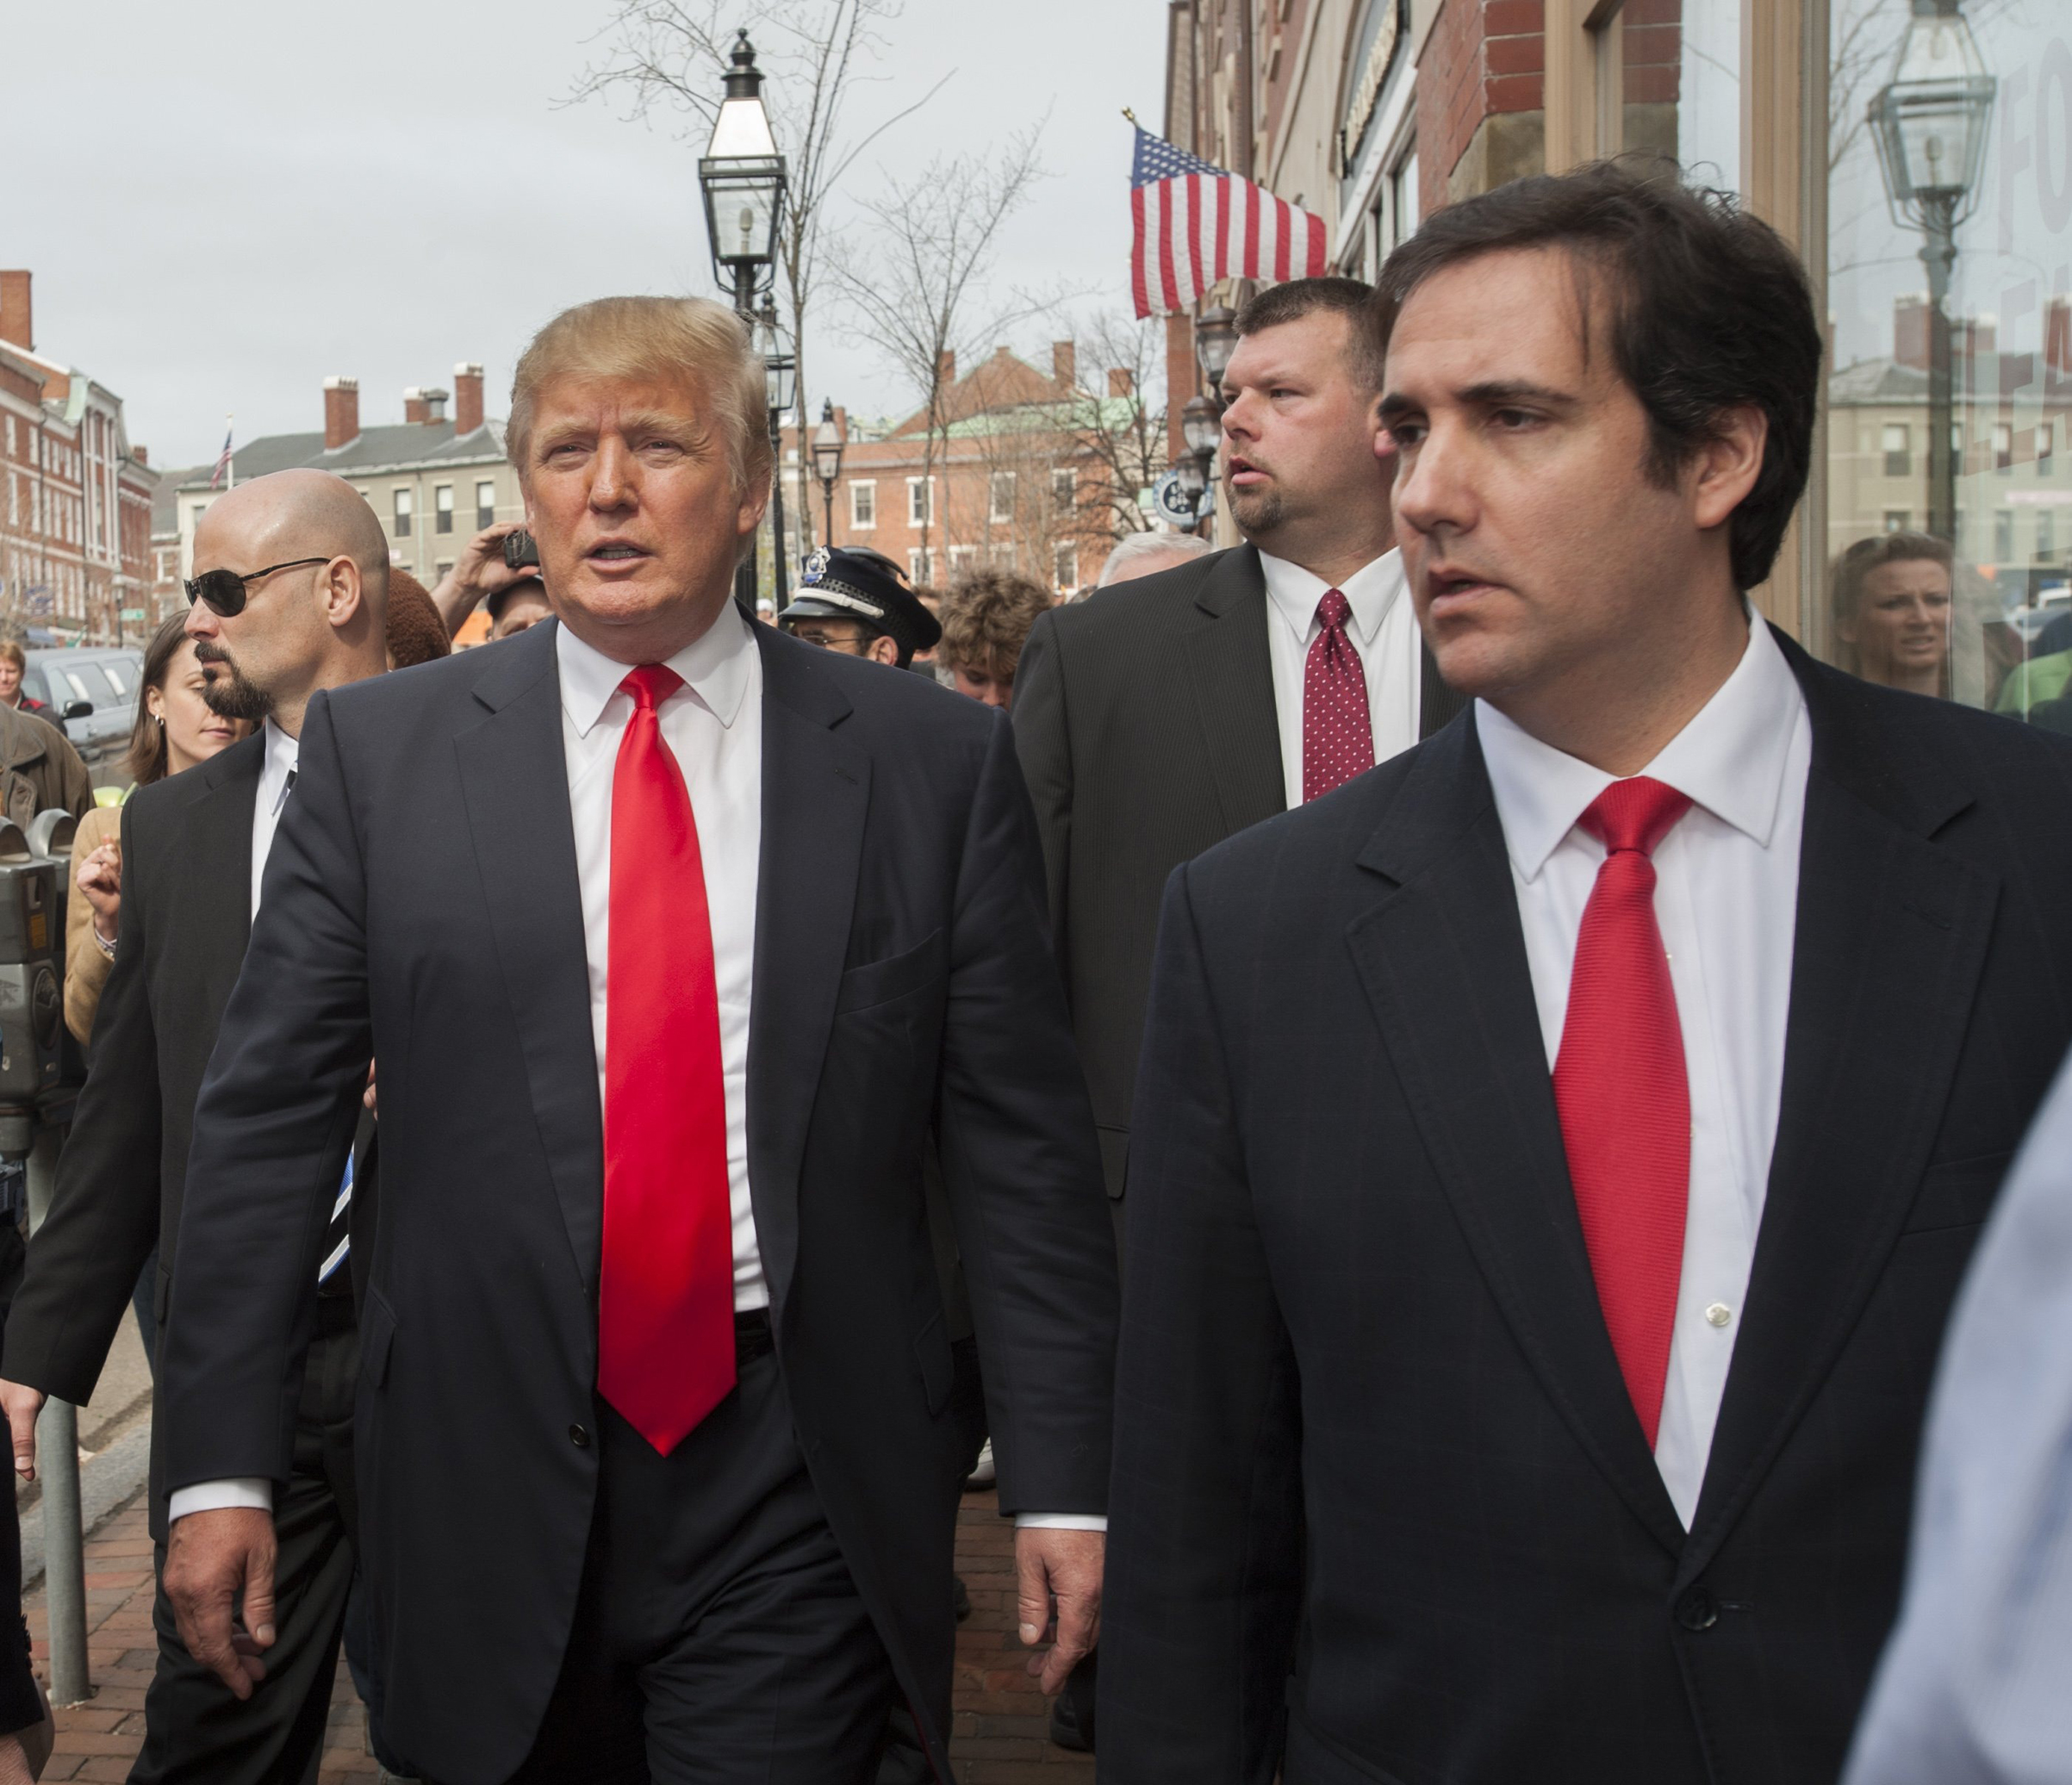 Trump and Cohen visit Portsmouth, N.H., in April 2011